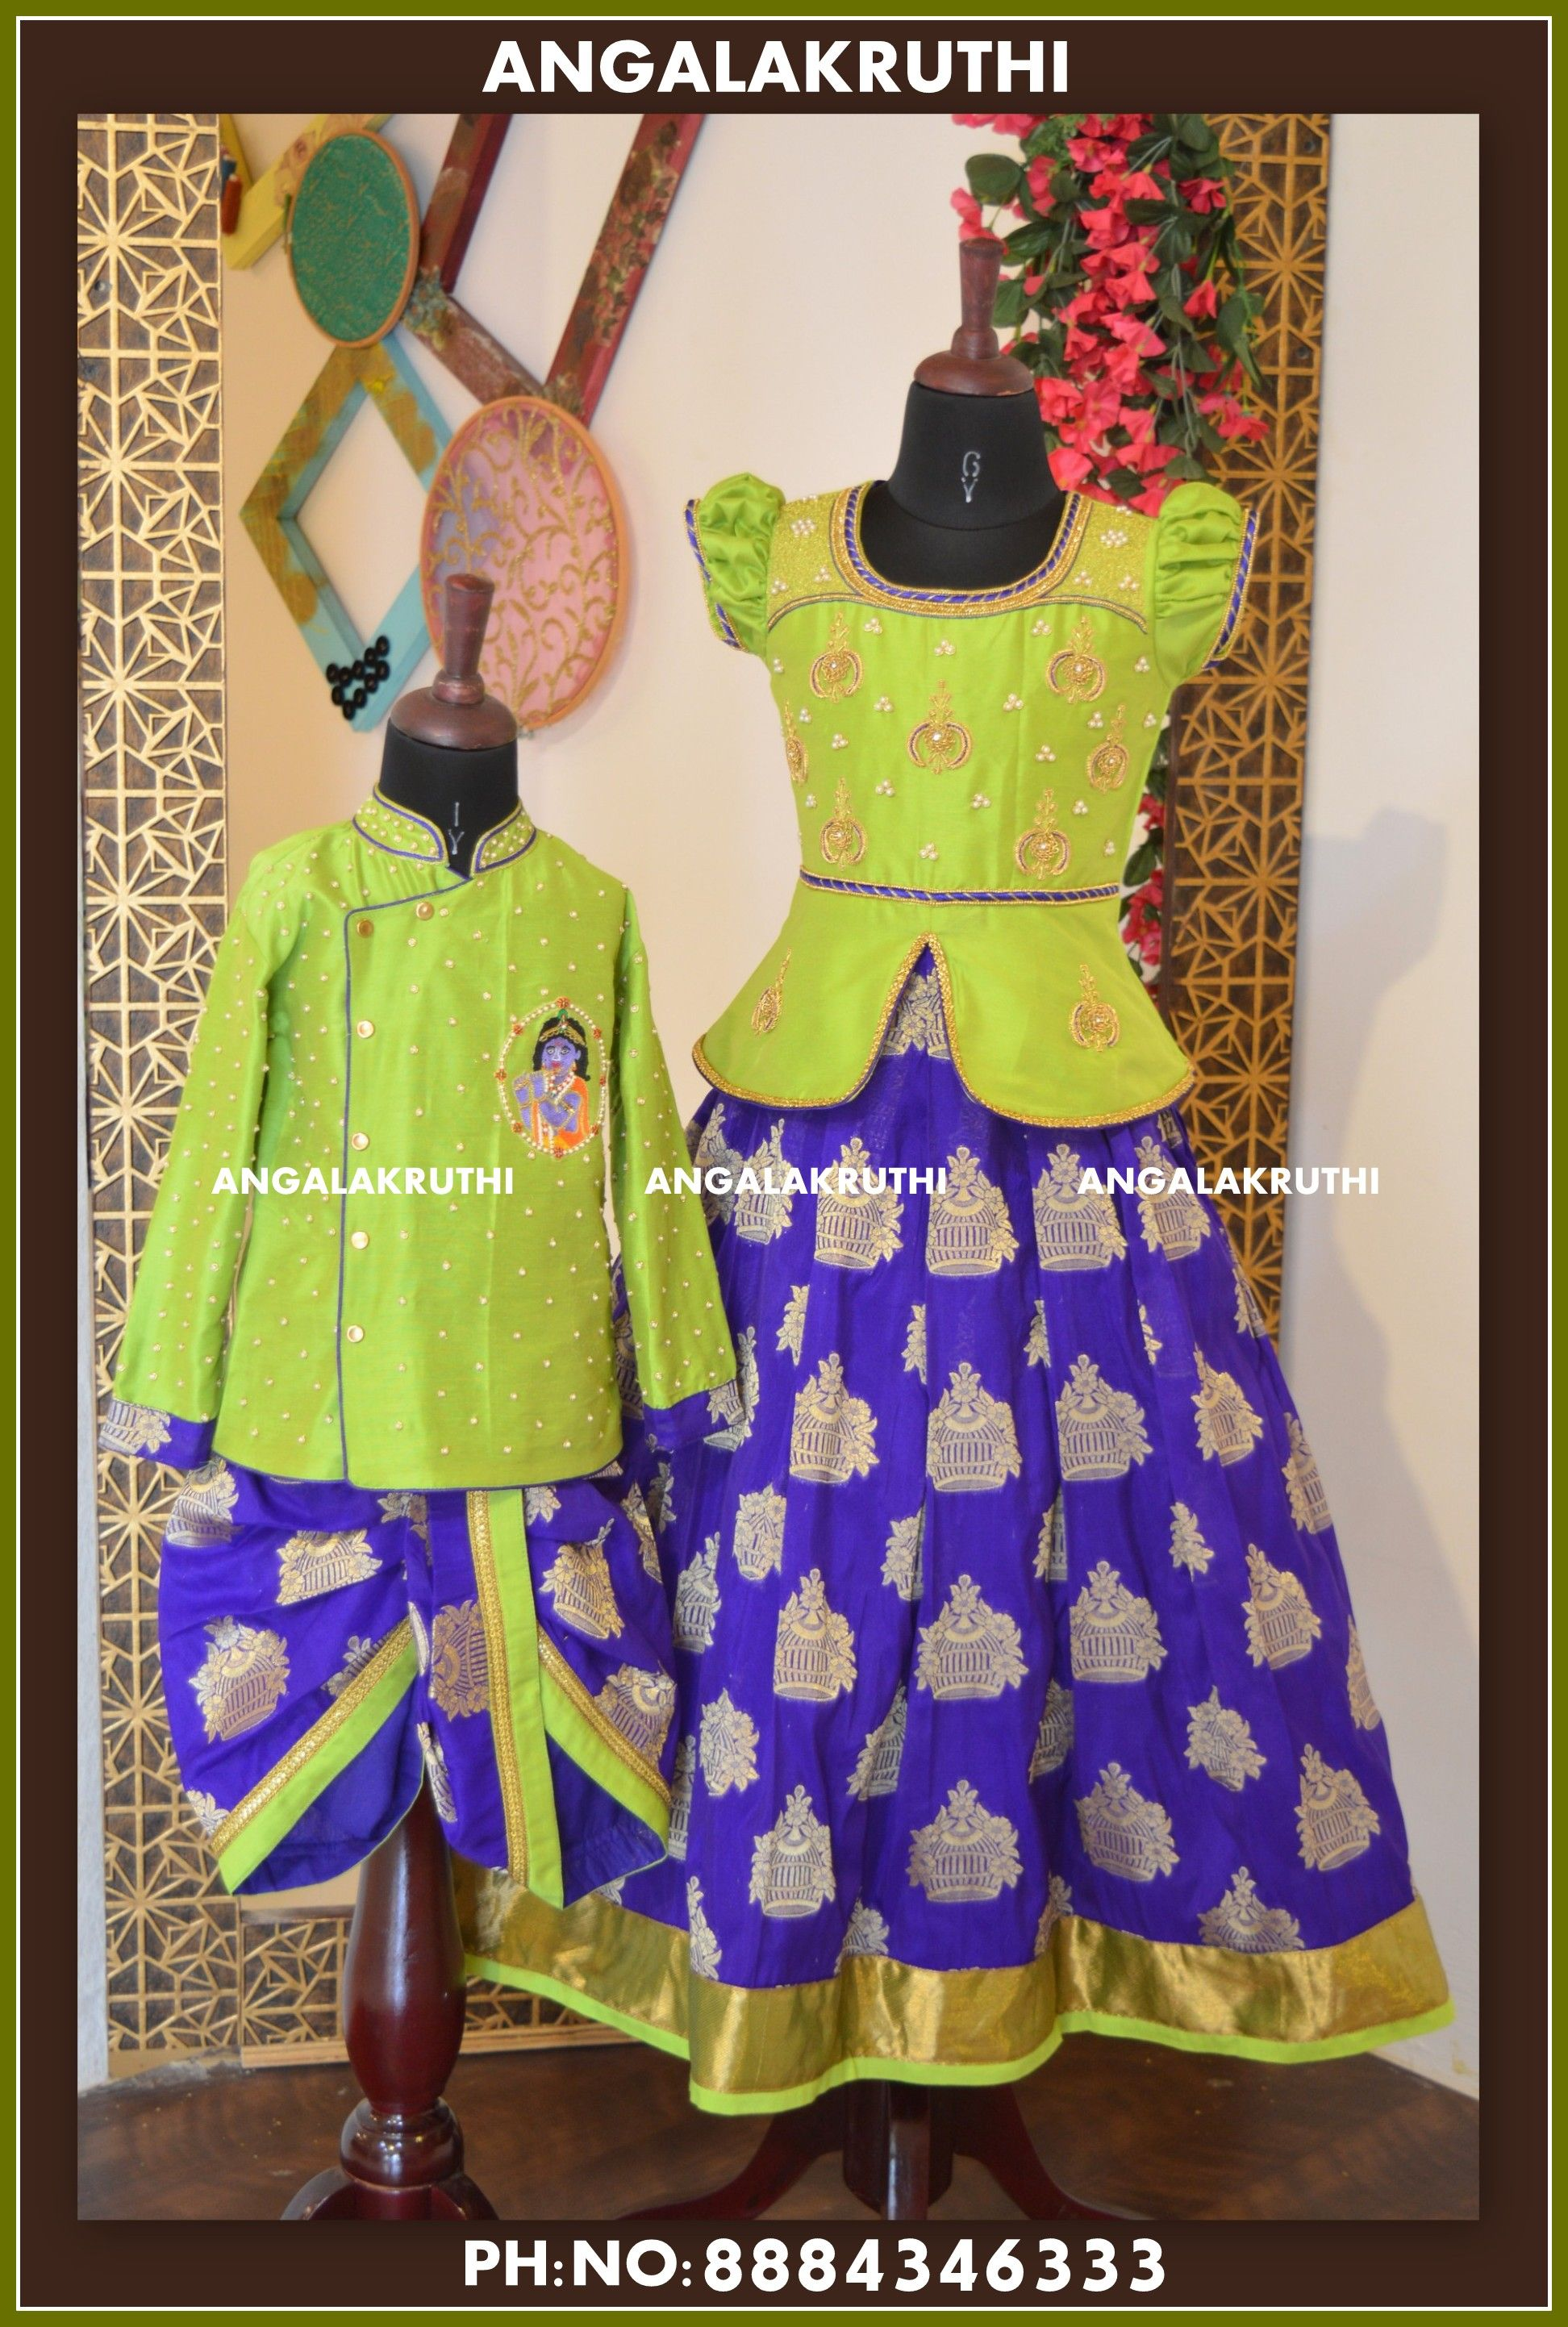 Brother And Sister Matching Dress Designs In India Bangalore Kids Party Wear Traditional Dresses Designs Kids Gown Design